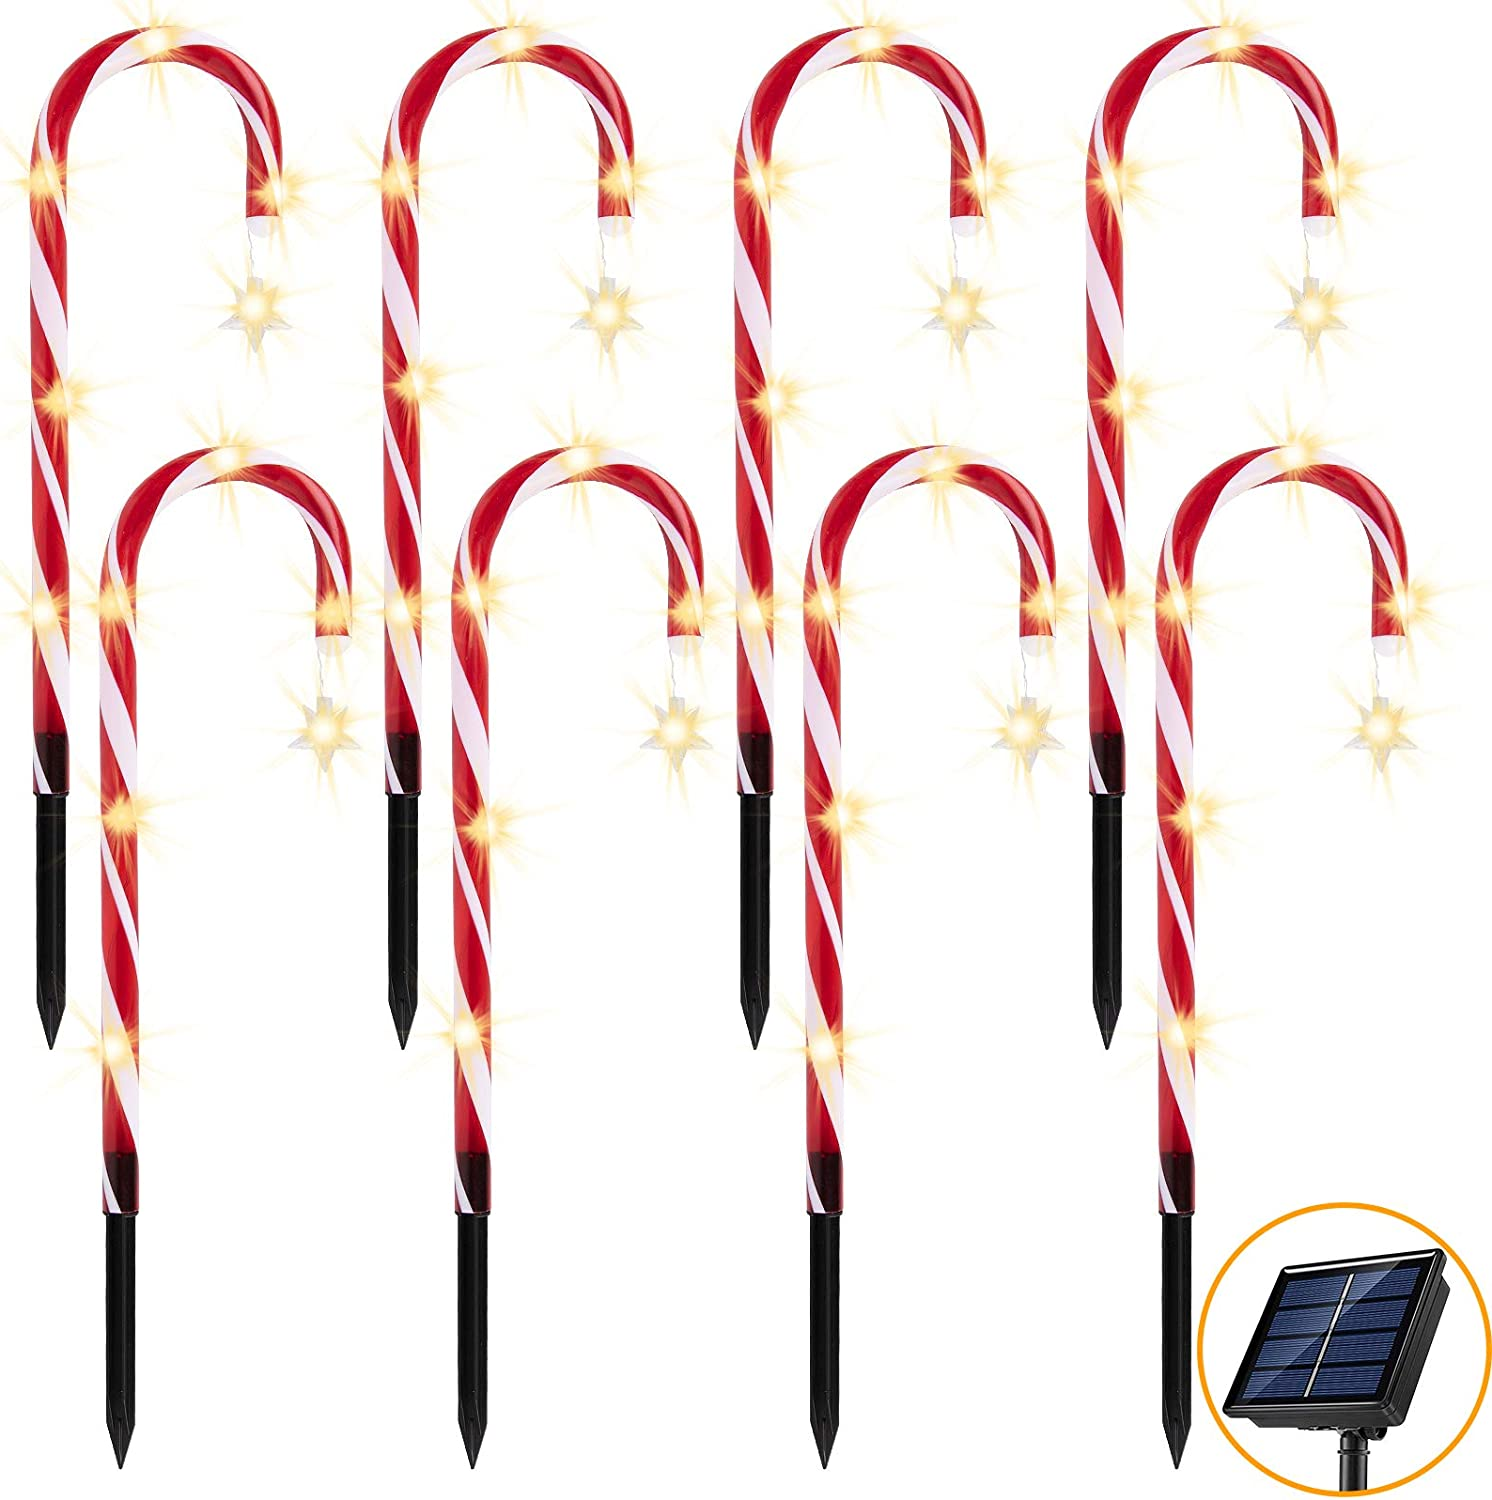 AmnoAmno Christmas Solar Candy Cane Stars Lights Outdoor Pathway Driveway Markers Decoration Set of 8 Red and White Xmas Home Indoor Decor